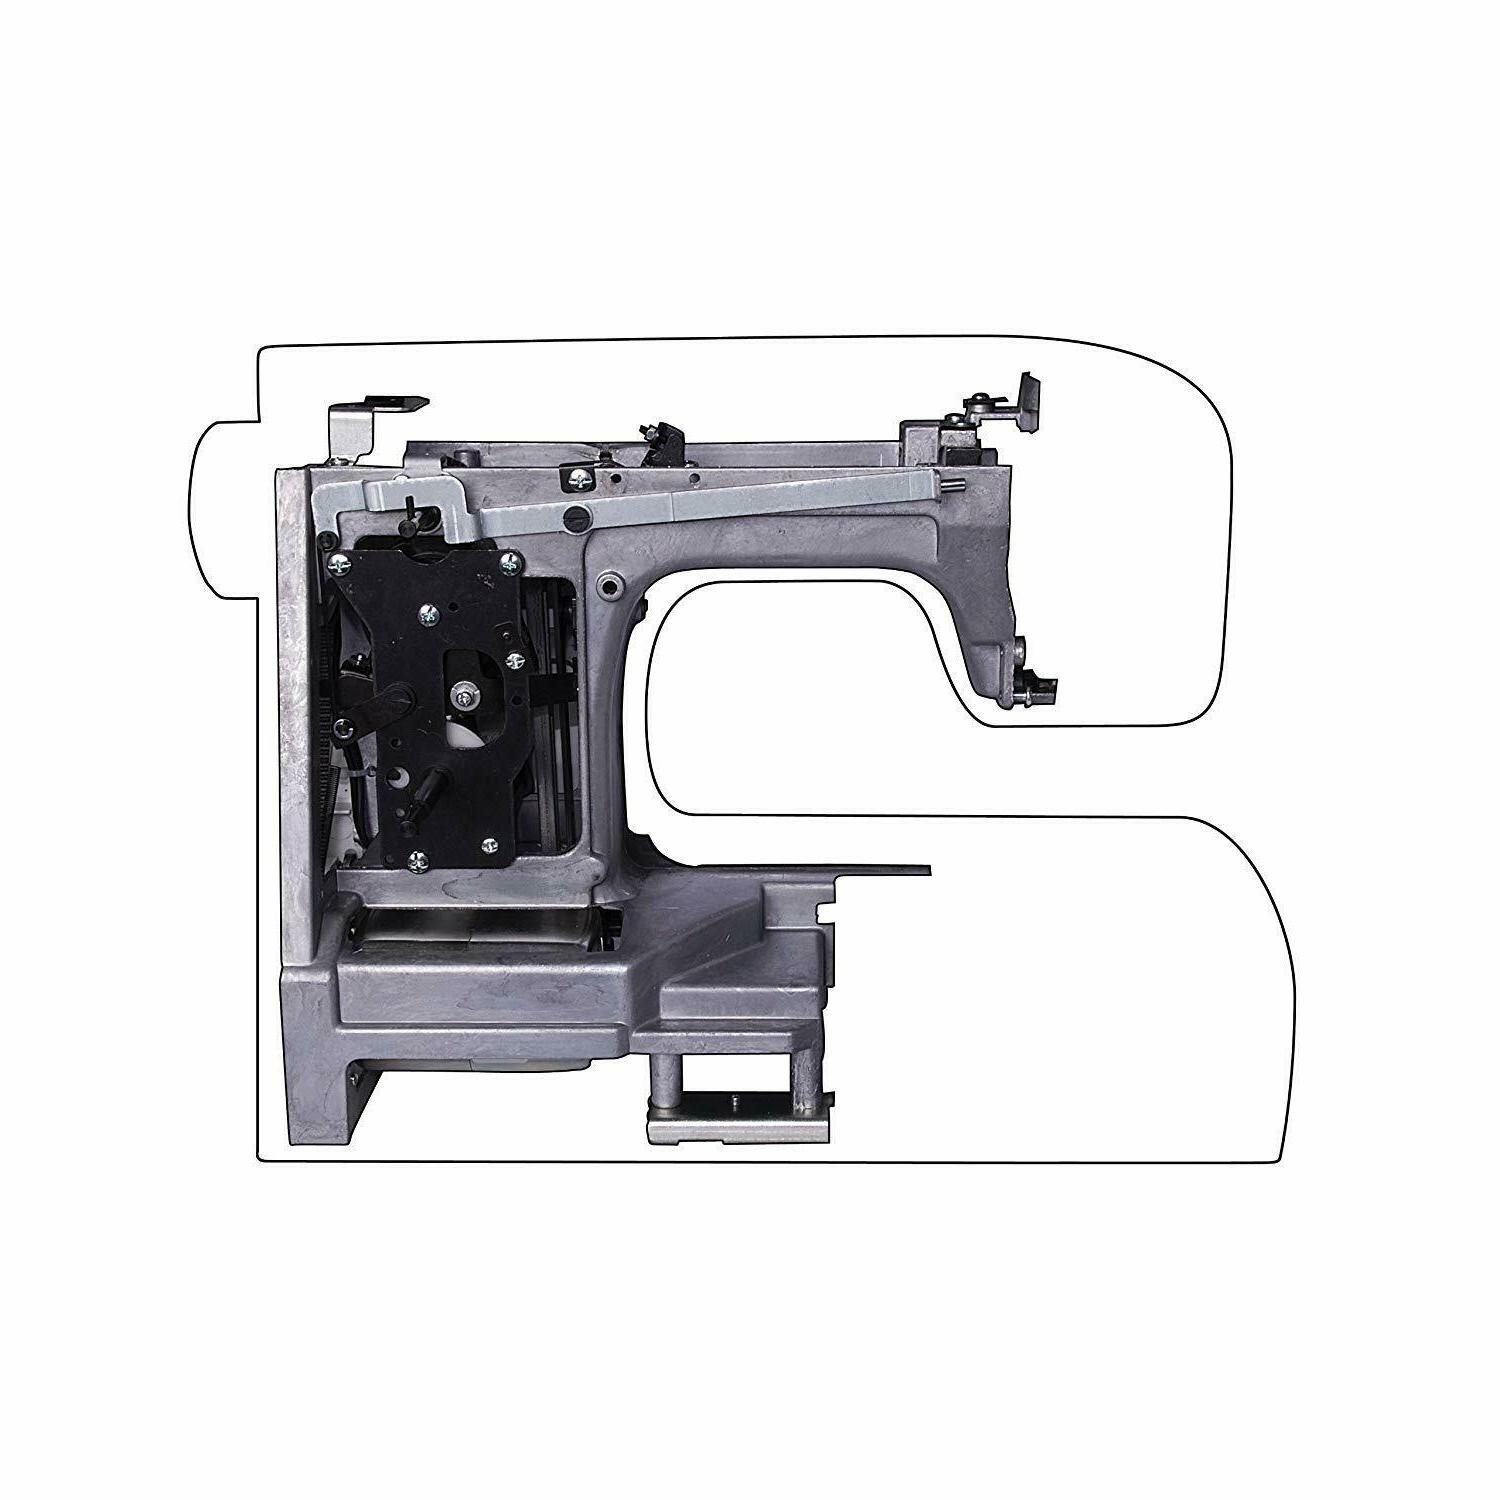 Singer Duty Sewing Machine Portable Embroidery Craft